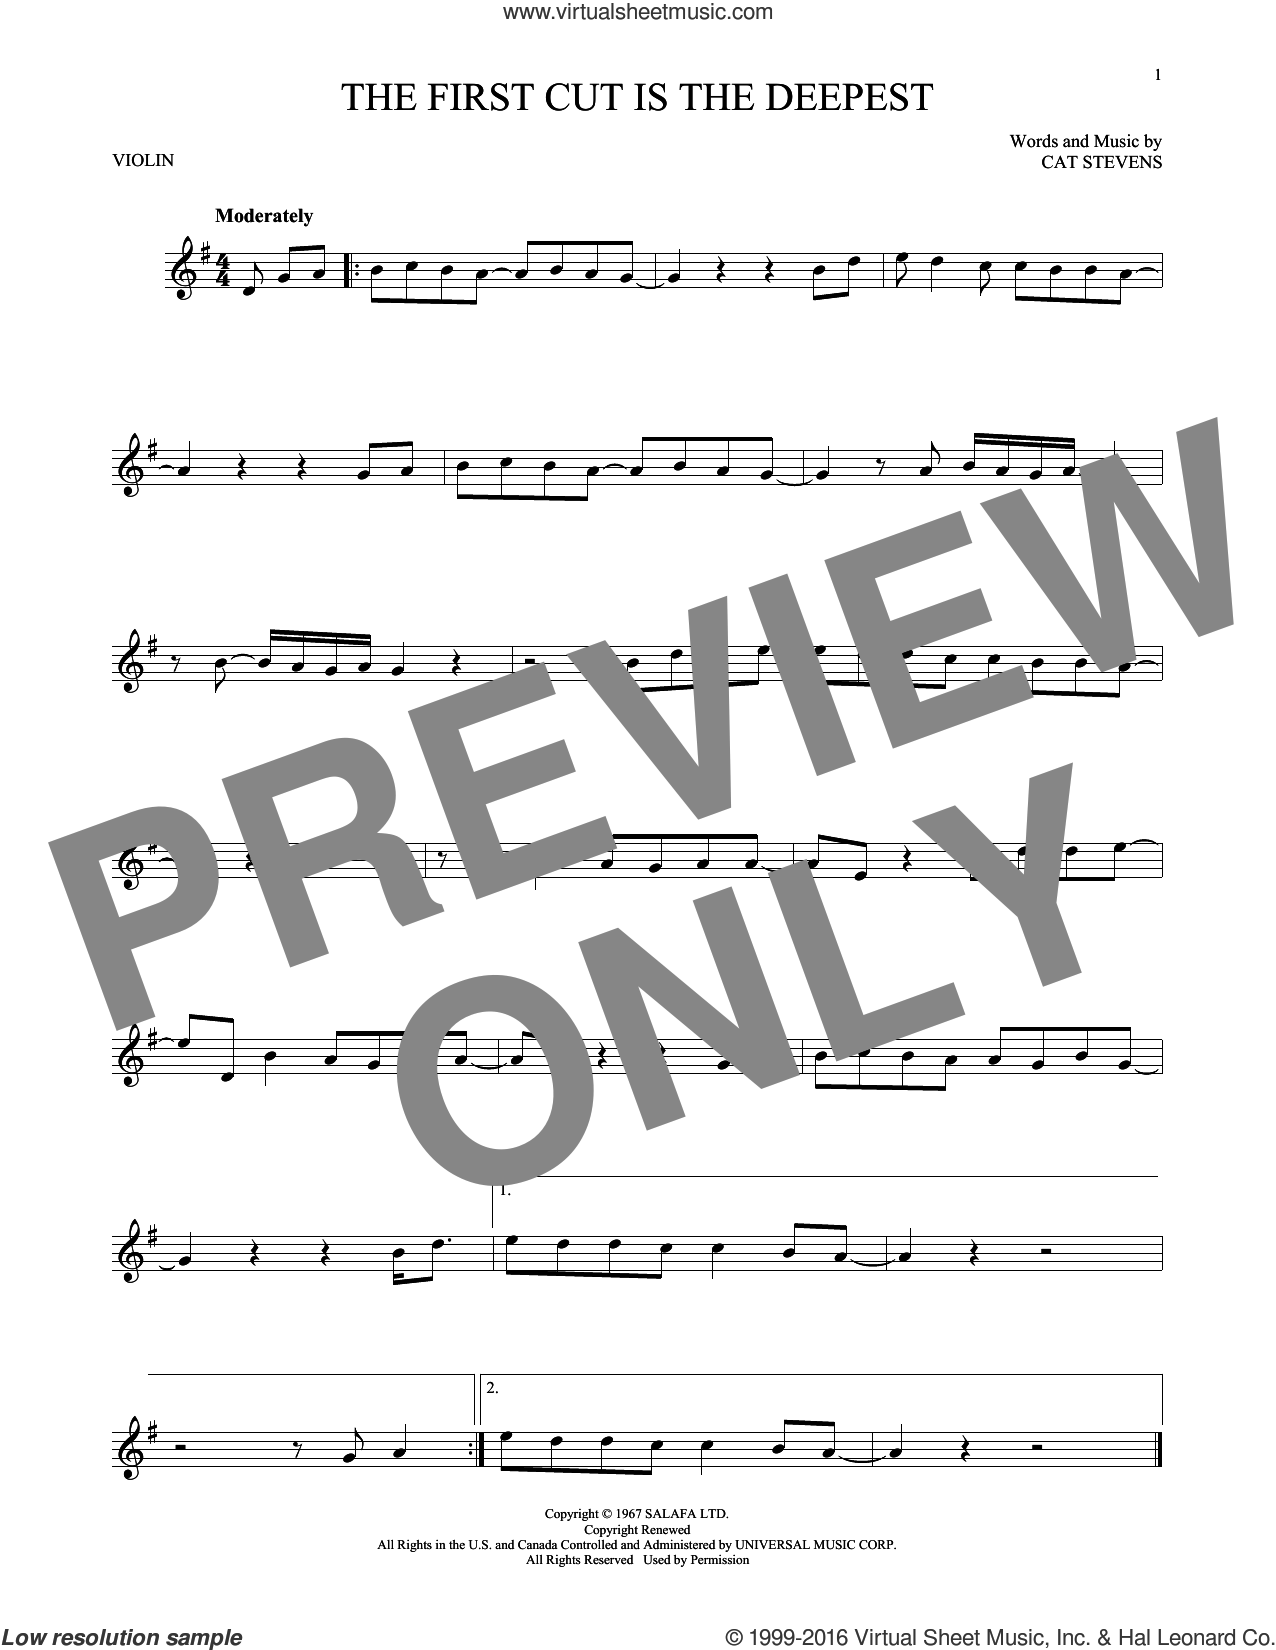 The First Cut Is The Deepest sheet music for violin solo by Cat Stevens, Rod Stewart and Sheryl Crow, intermediate skill level